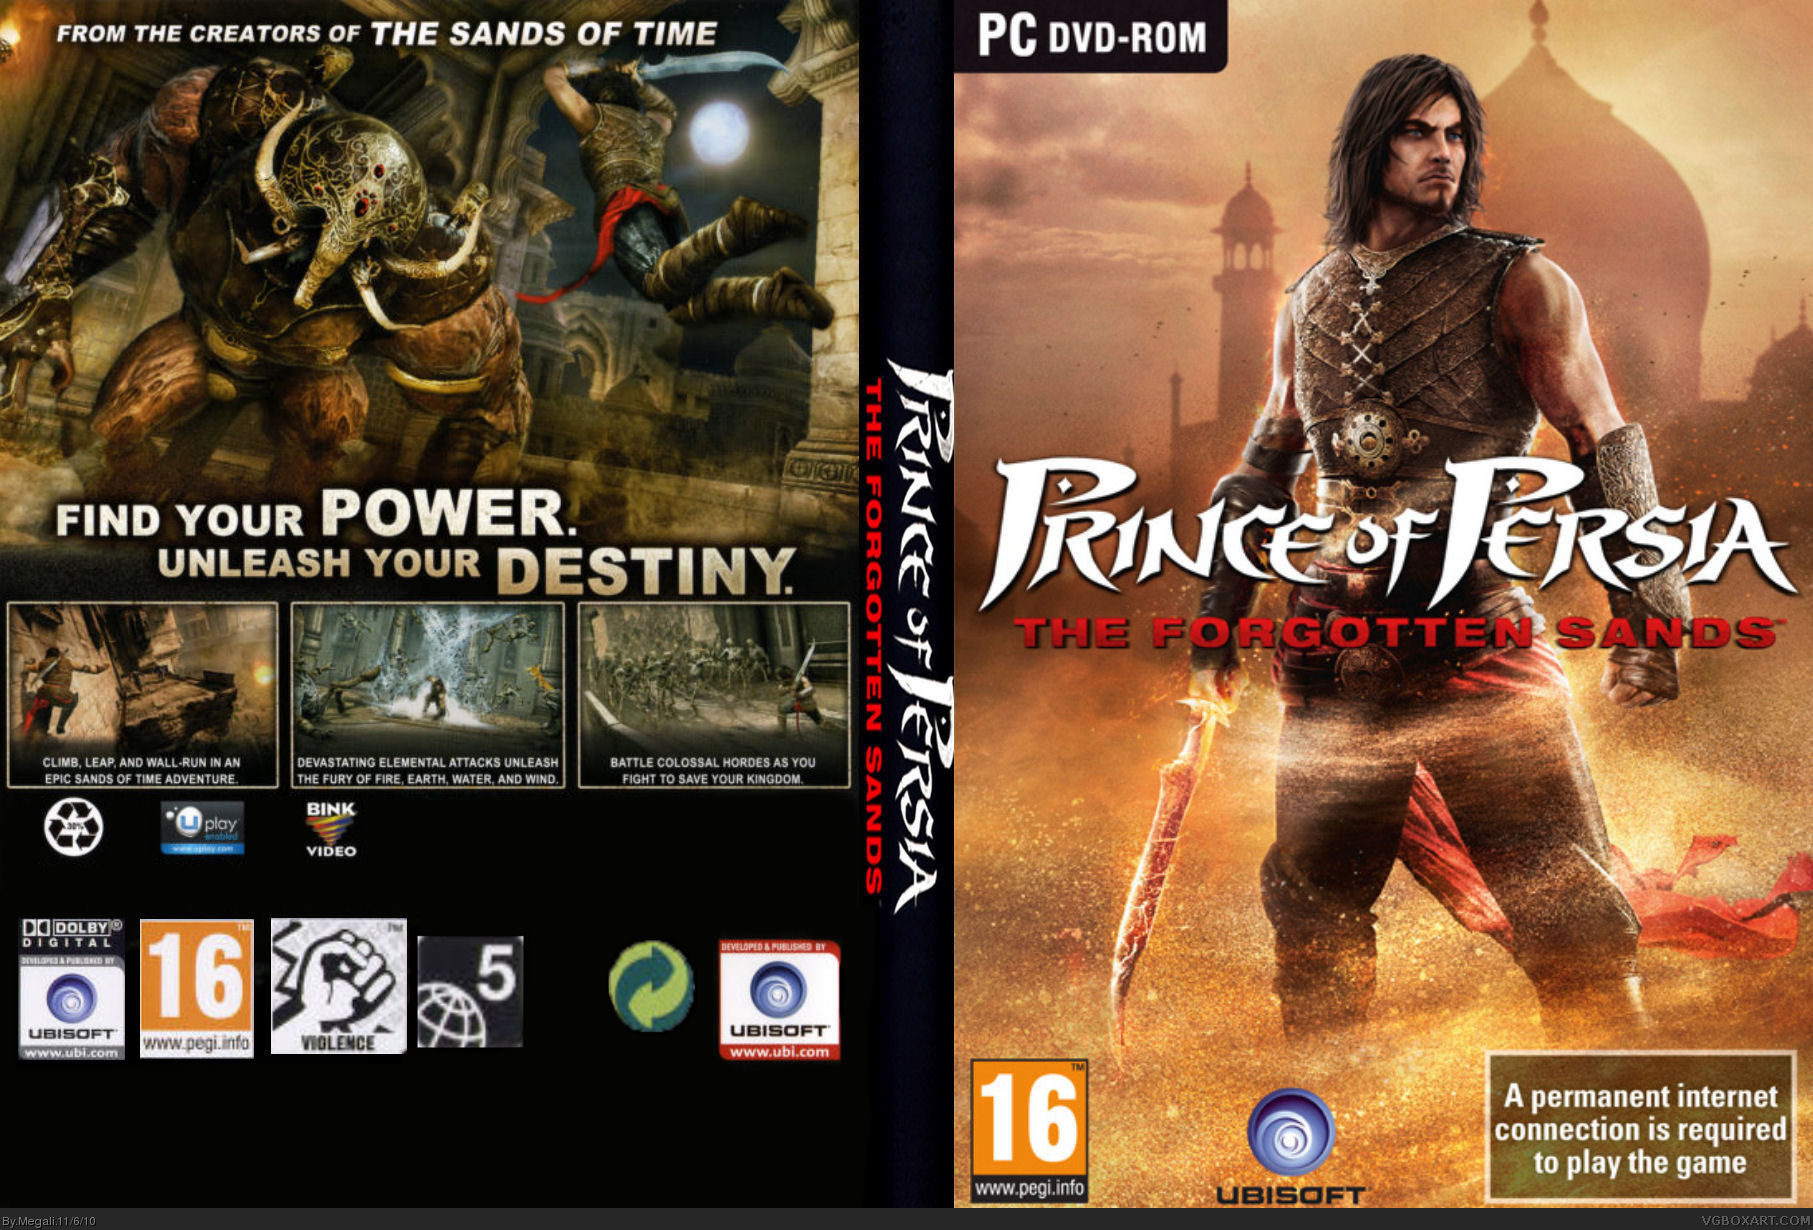 Prince of persia the forgotten sands cd key generator